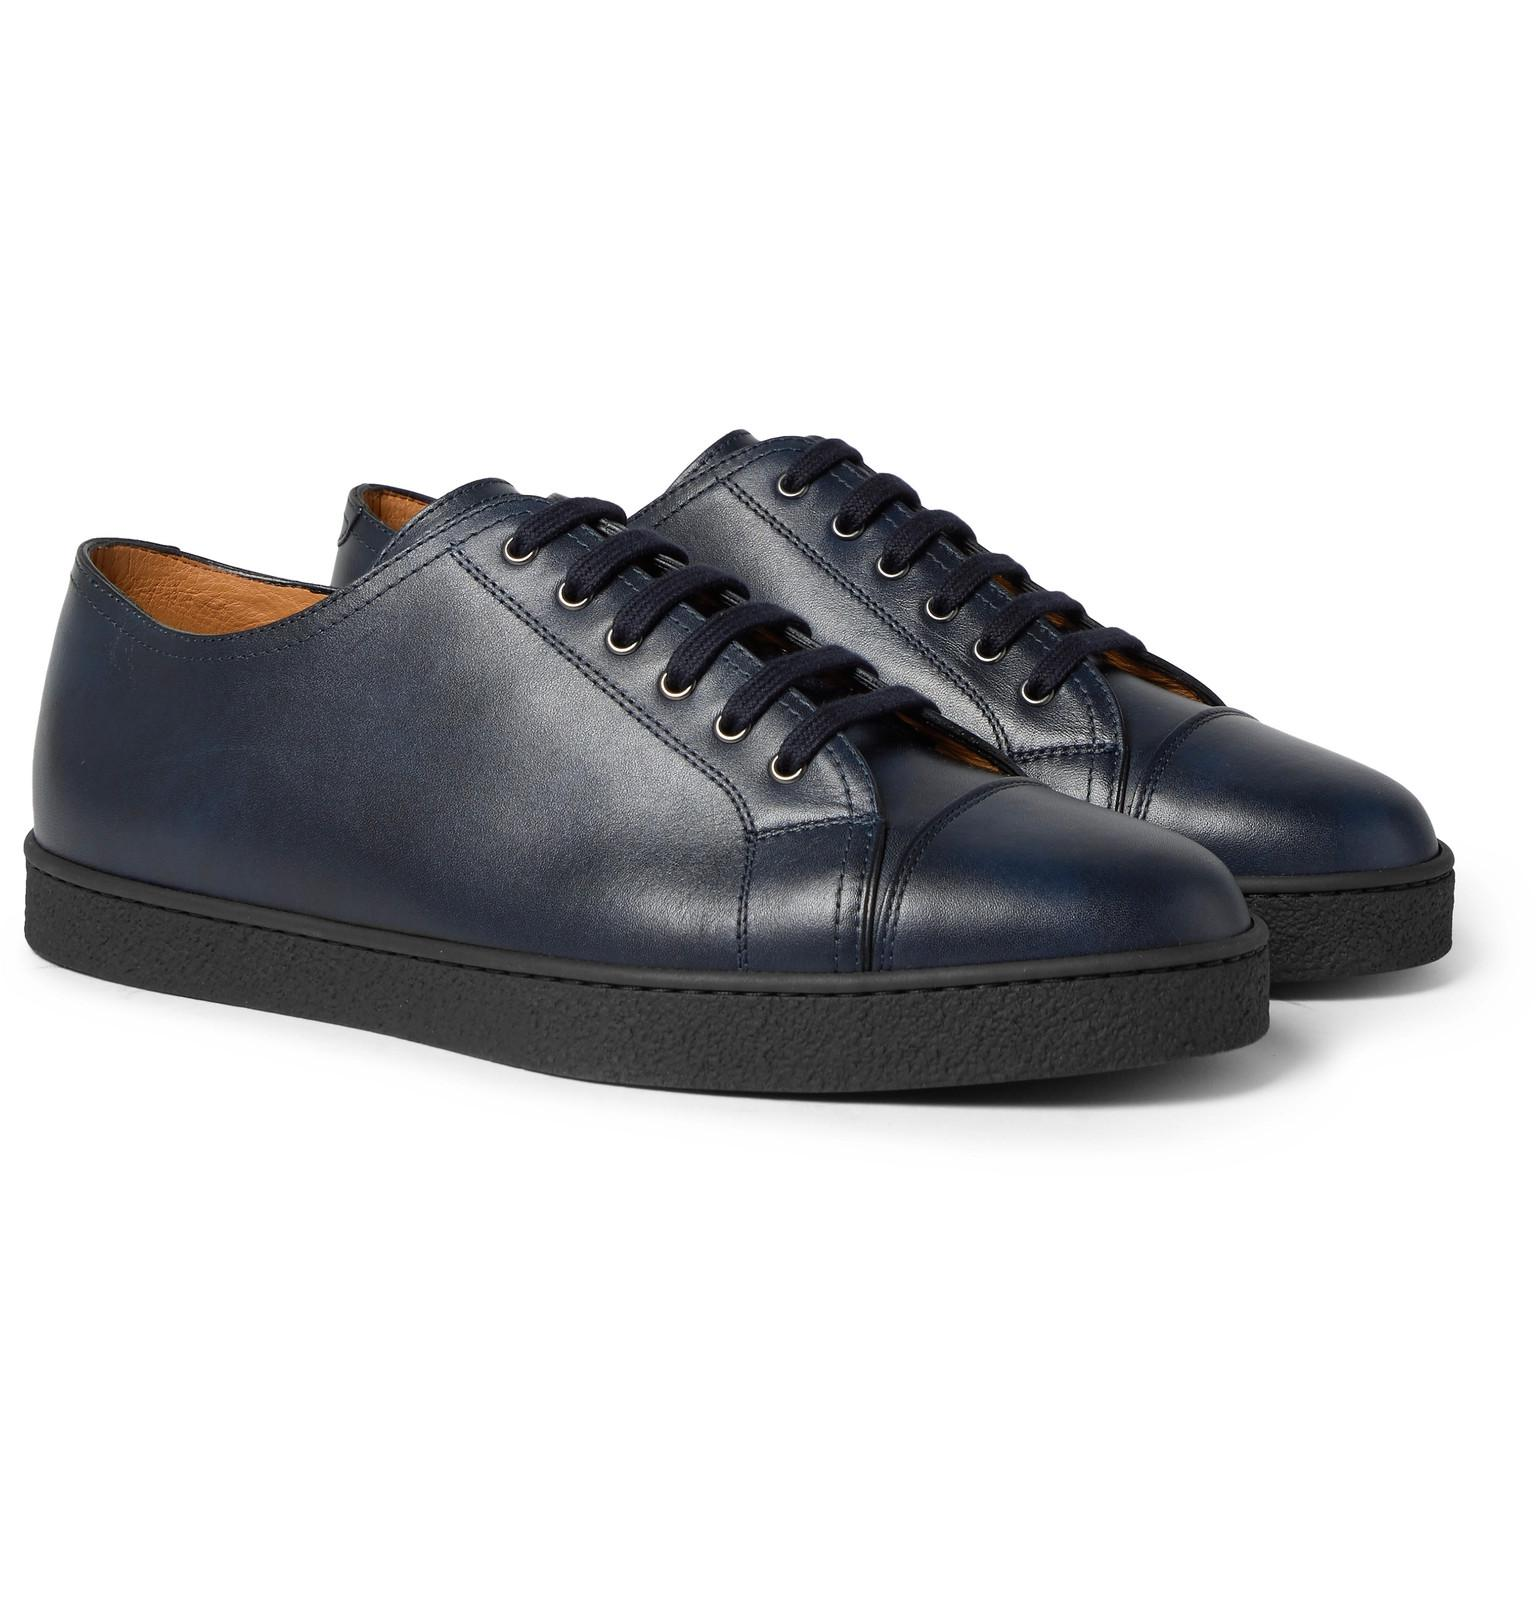 Levah Cap-toe Leather And Suede Sneakers John Lobb